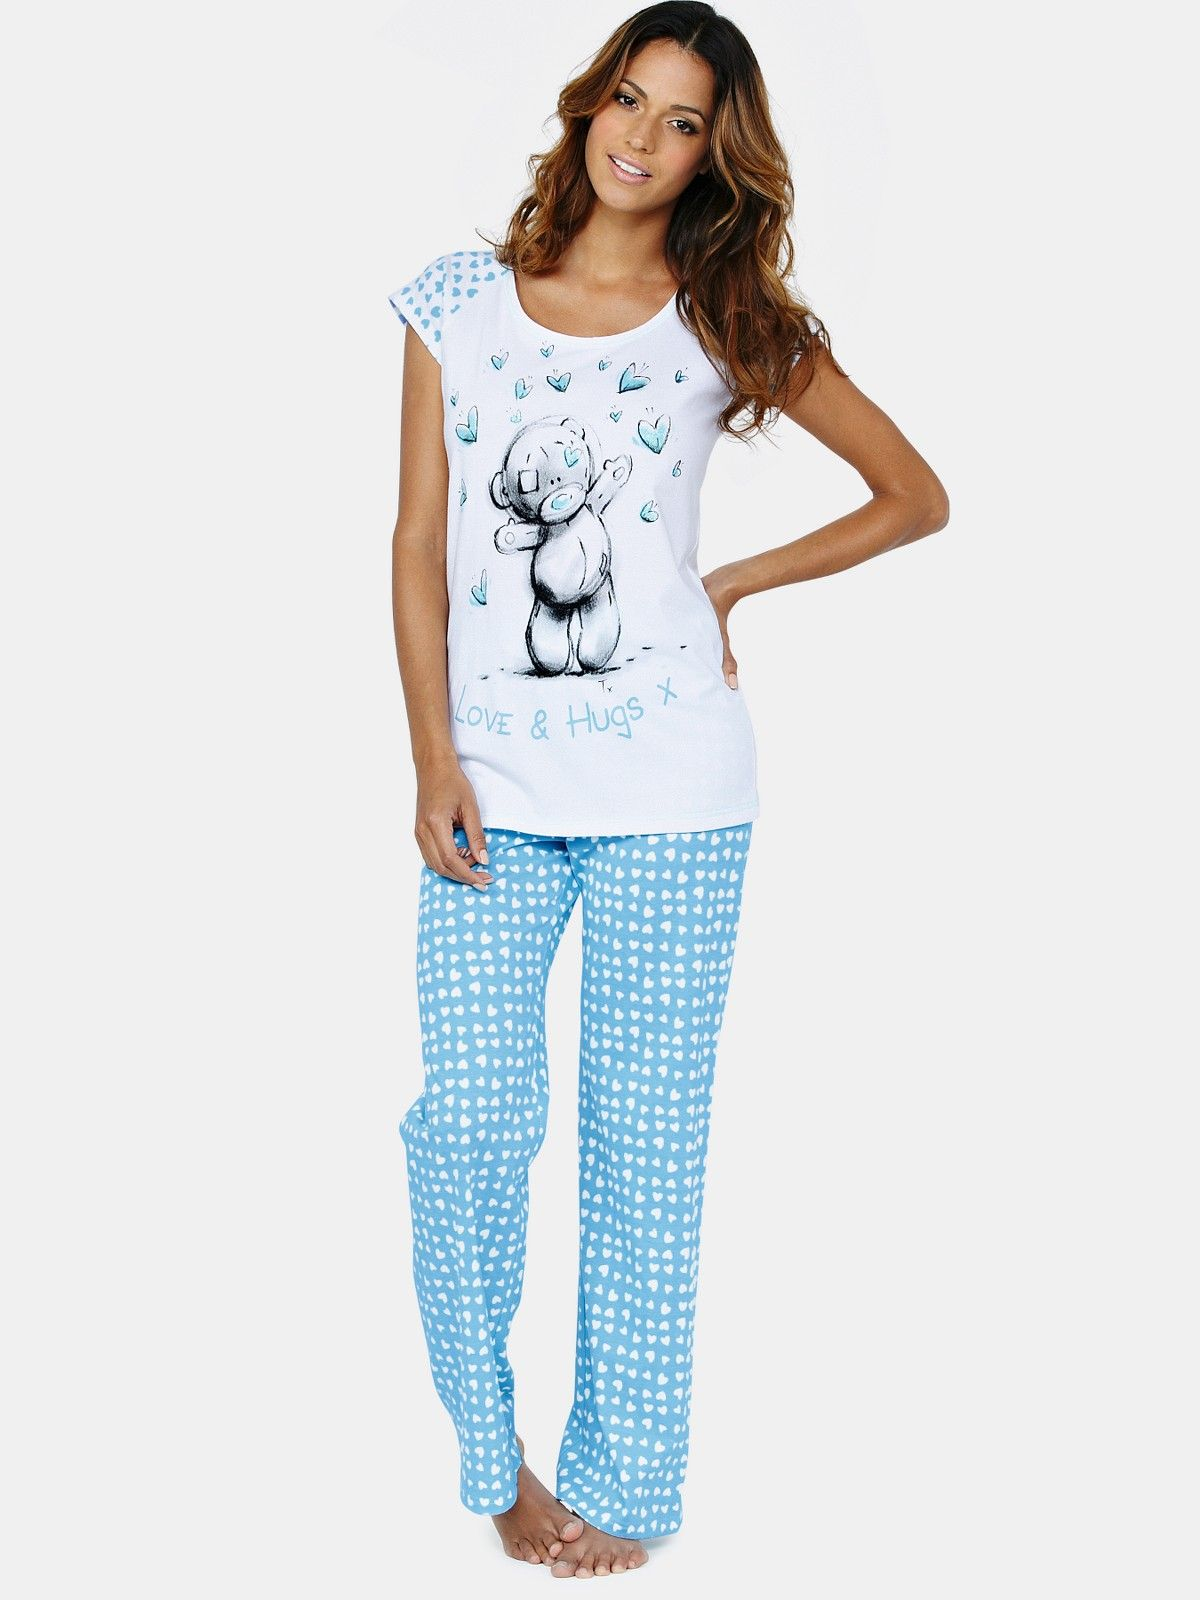 Tatty Teddy Pyjamas Very.co.uk  5f660187d